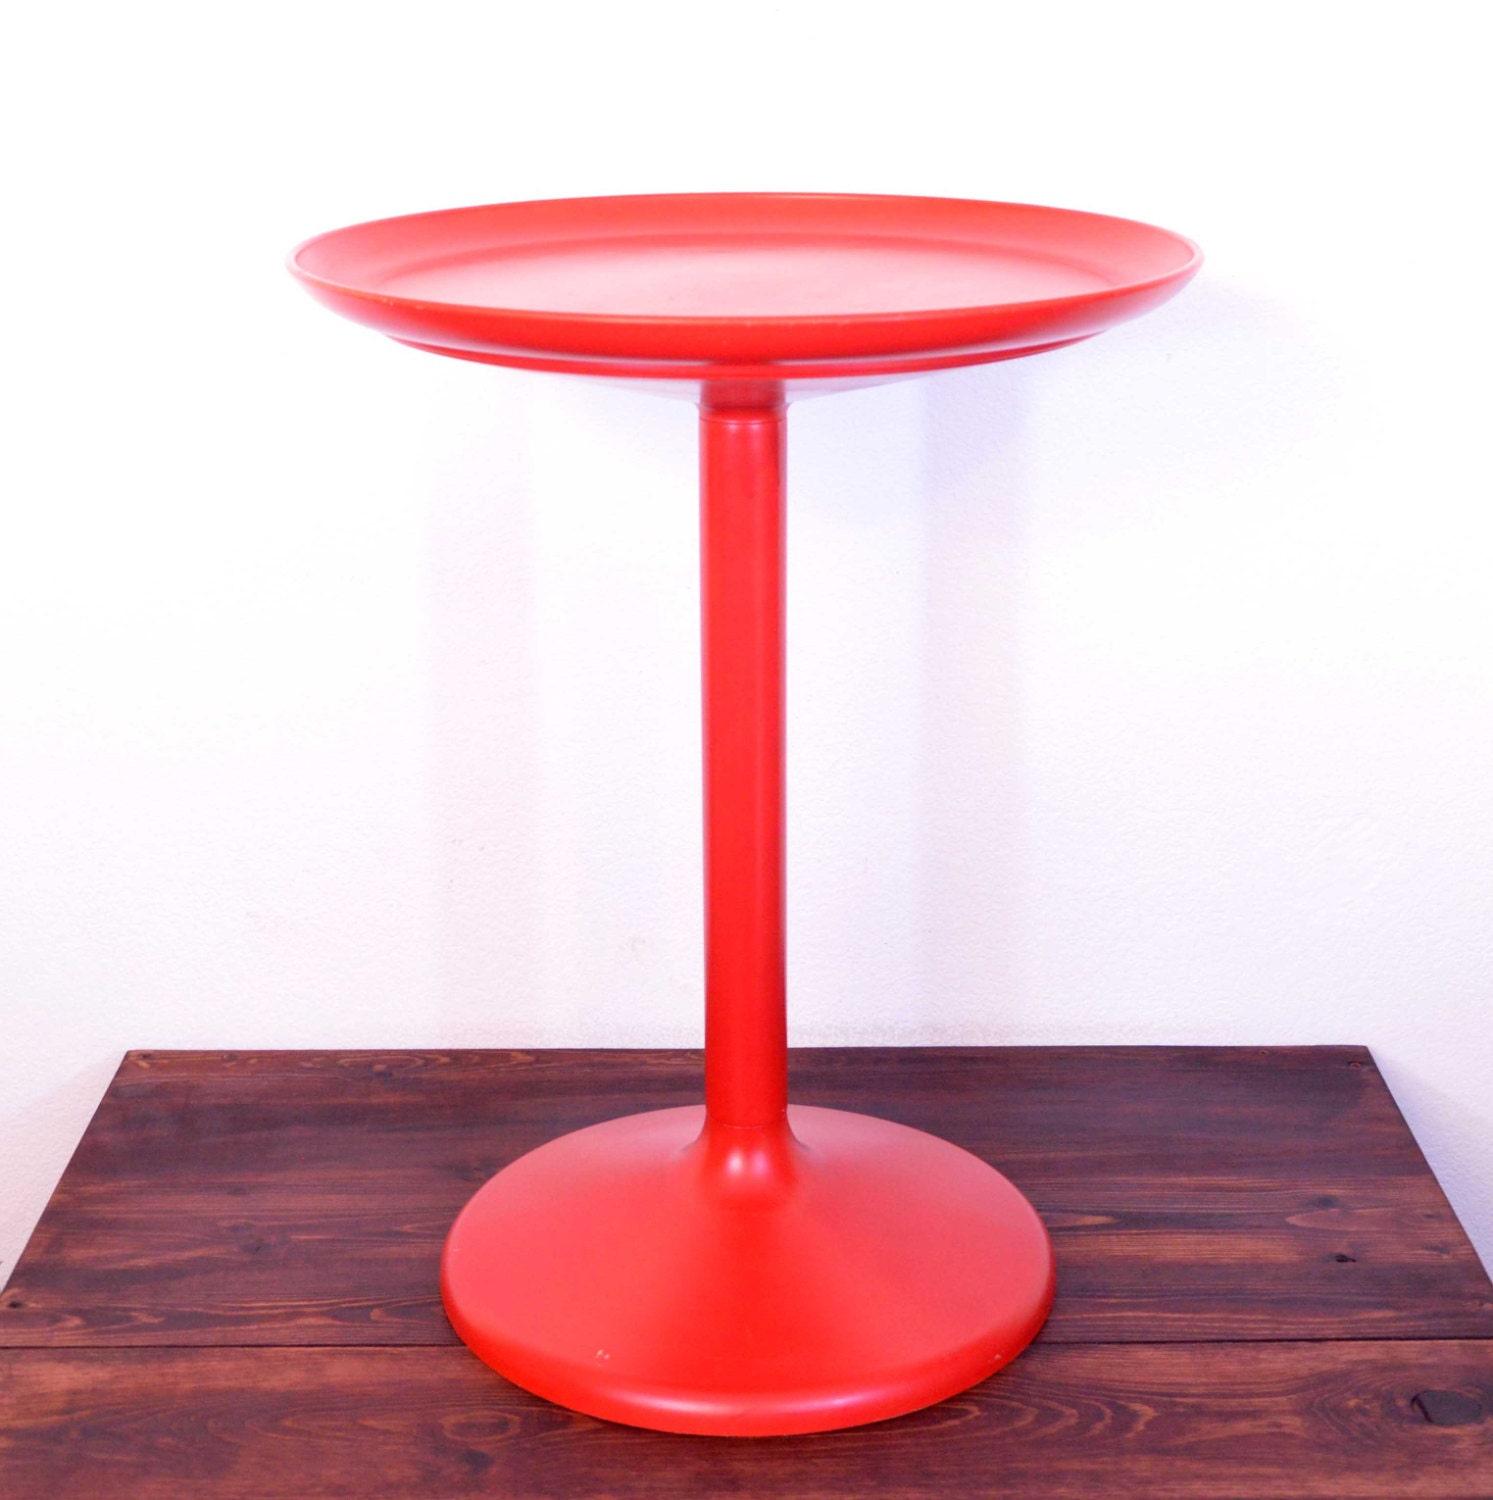 Vintage ikea sandsk r tulip table designed by thomas for Ikea cocktail table